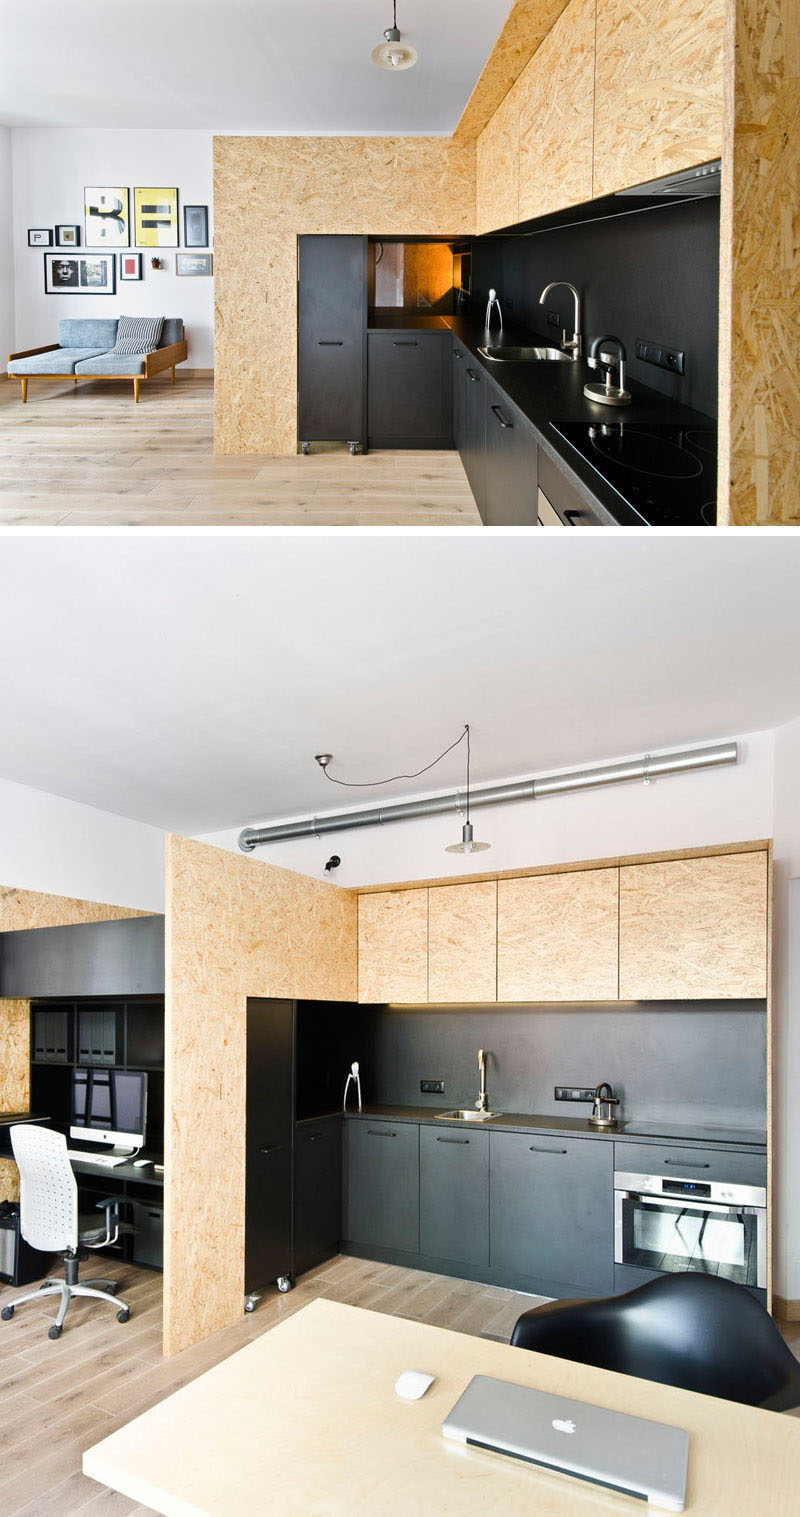 This matte black kitchen is part of a small apartment designed as a live/work space for a design studio.